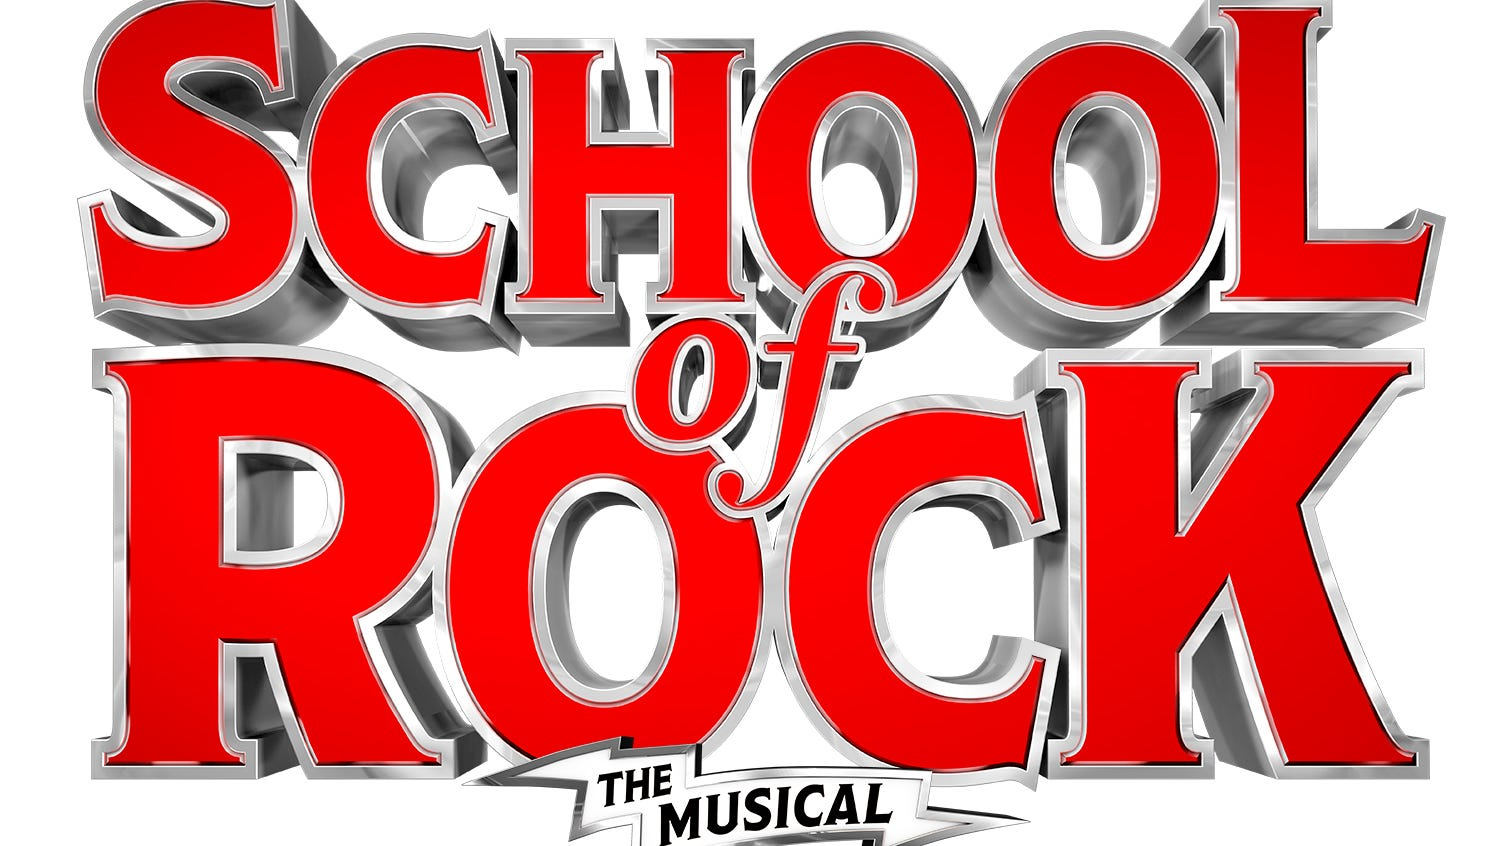 Insider 50 Free Passes To See School Of Rock Movie